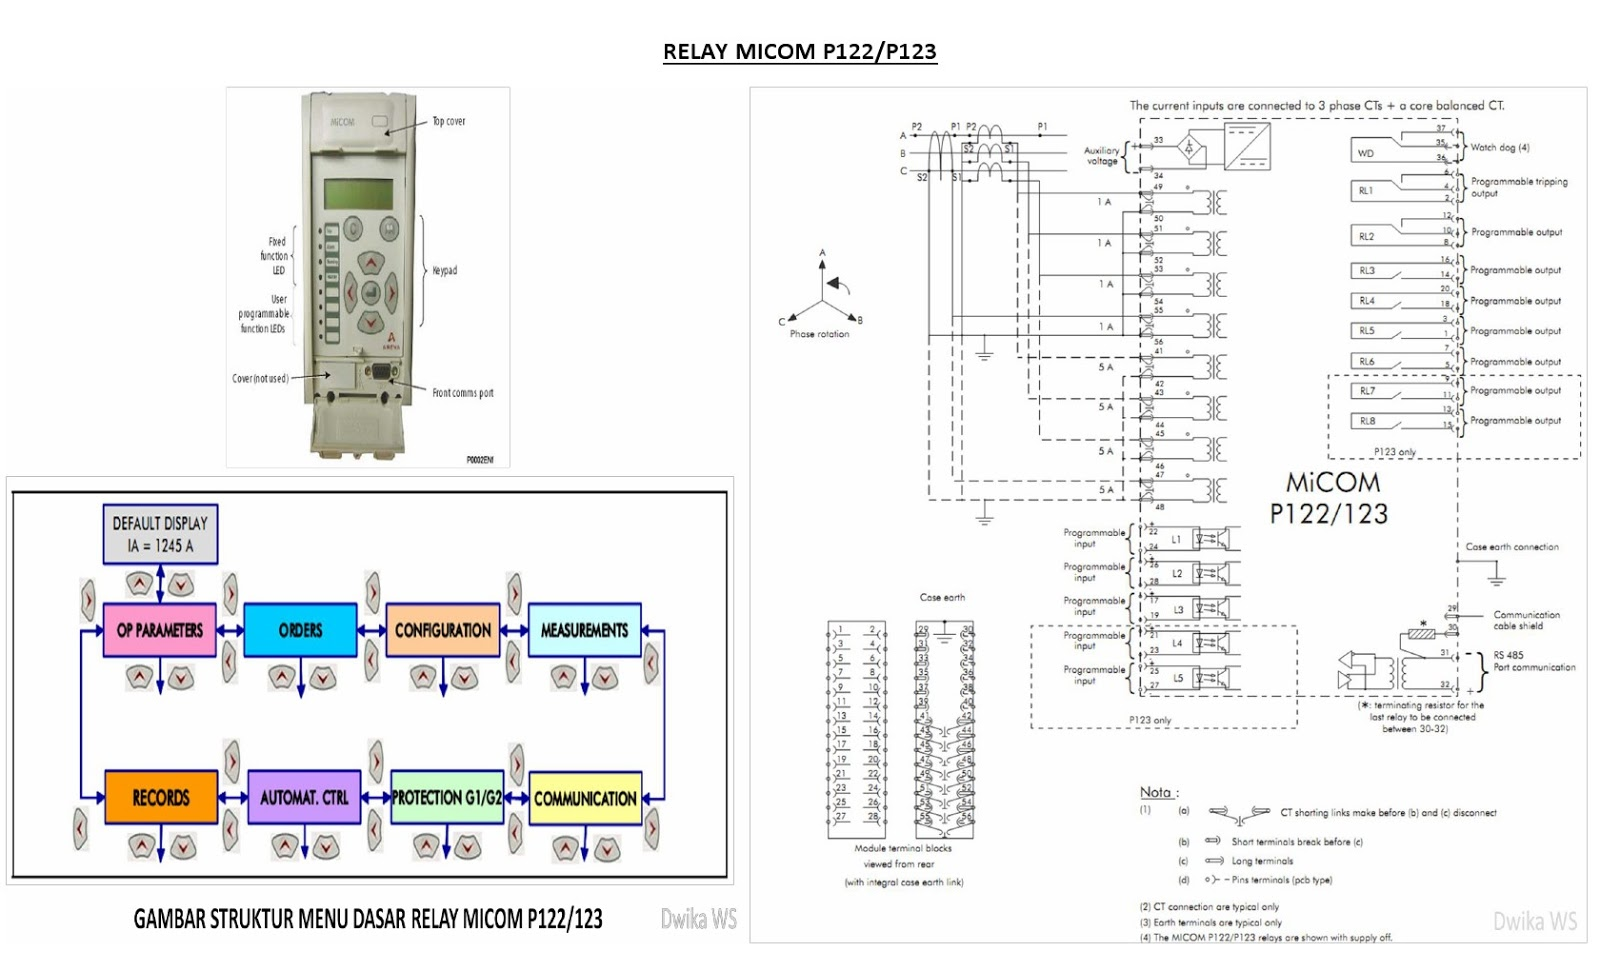 berbagai macam relay proteksi wiring knowledge sharing group 2 karet rh knowledgesharinggroup2karet blogspot com Fuel Pump Relay Wiring Diagram 11 Pin Relay Wiring Diagram